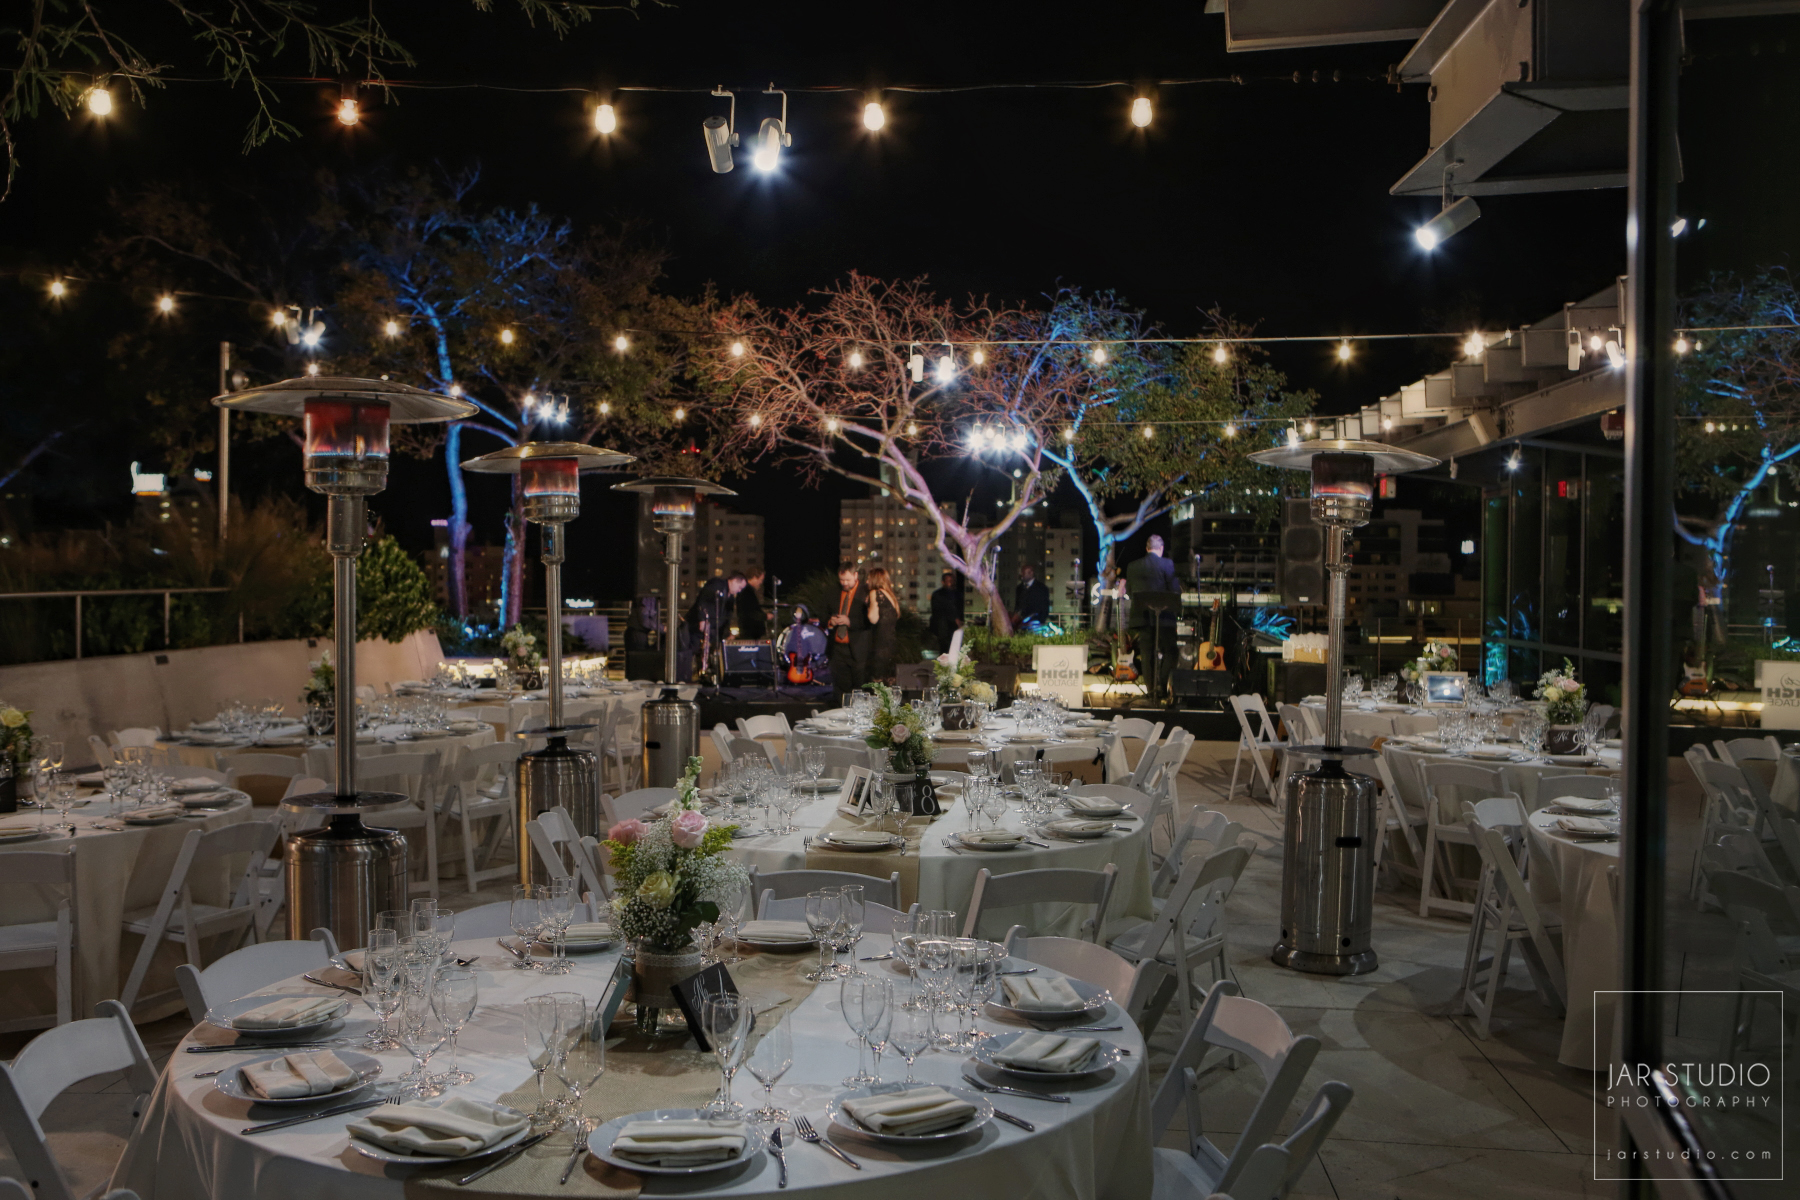 30-elegant-roof-top-wedding-venue-jarstudio-photography-orlando.JPG